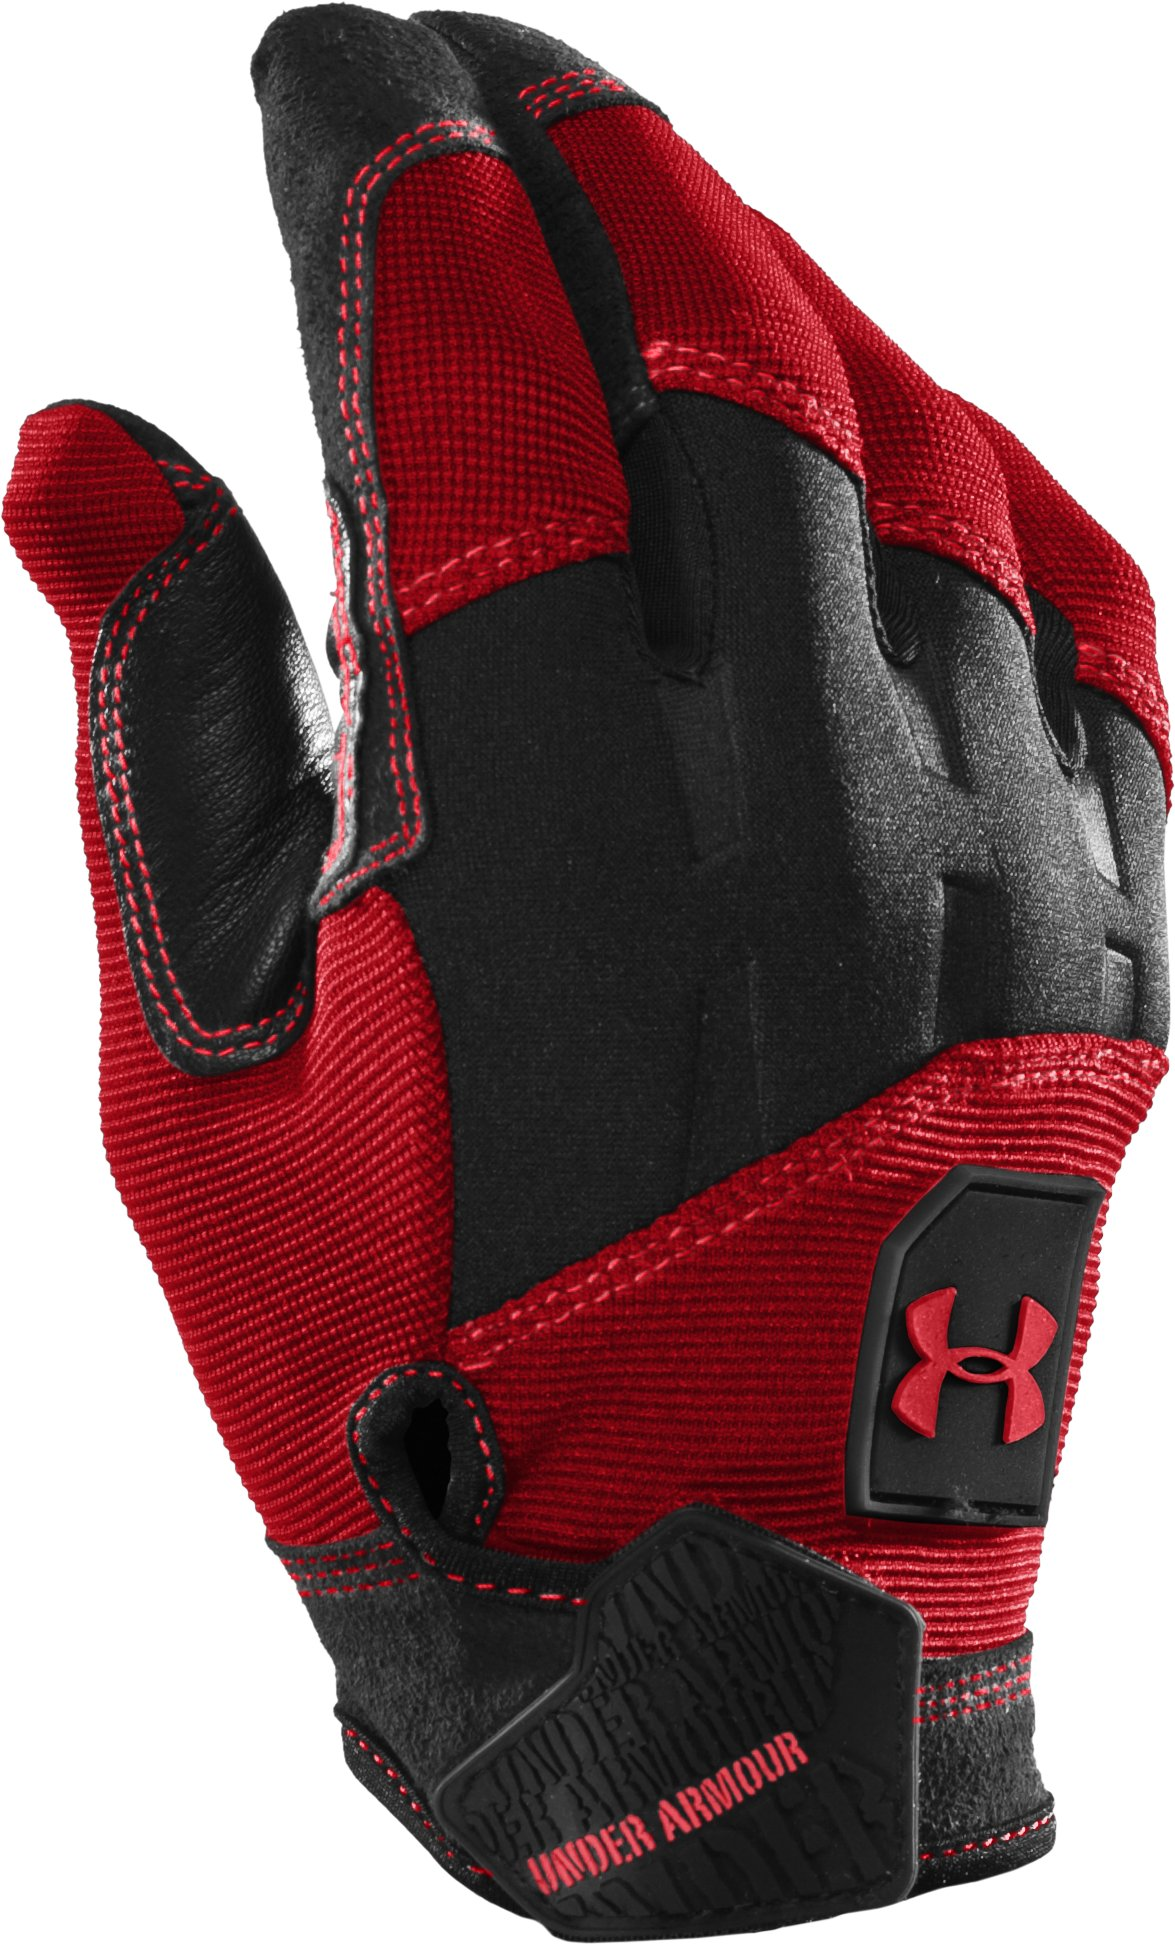 Men's Speed Gloves, University Red